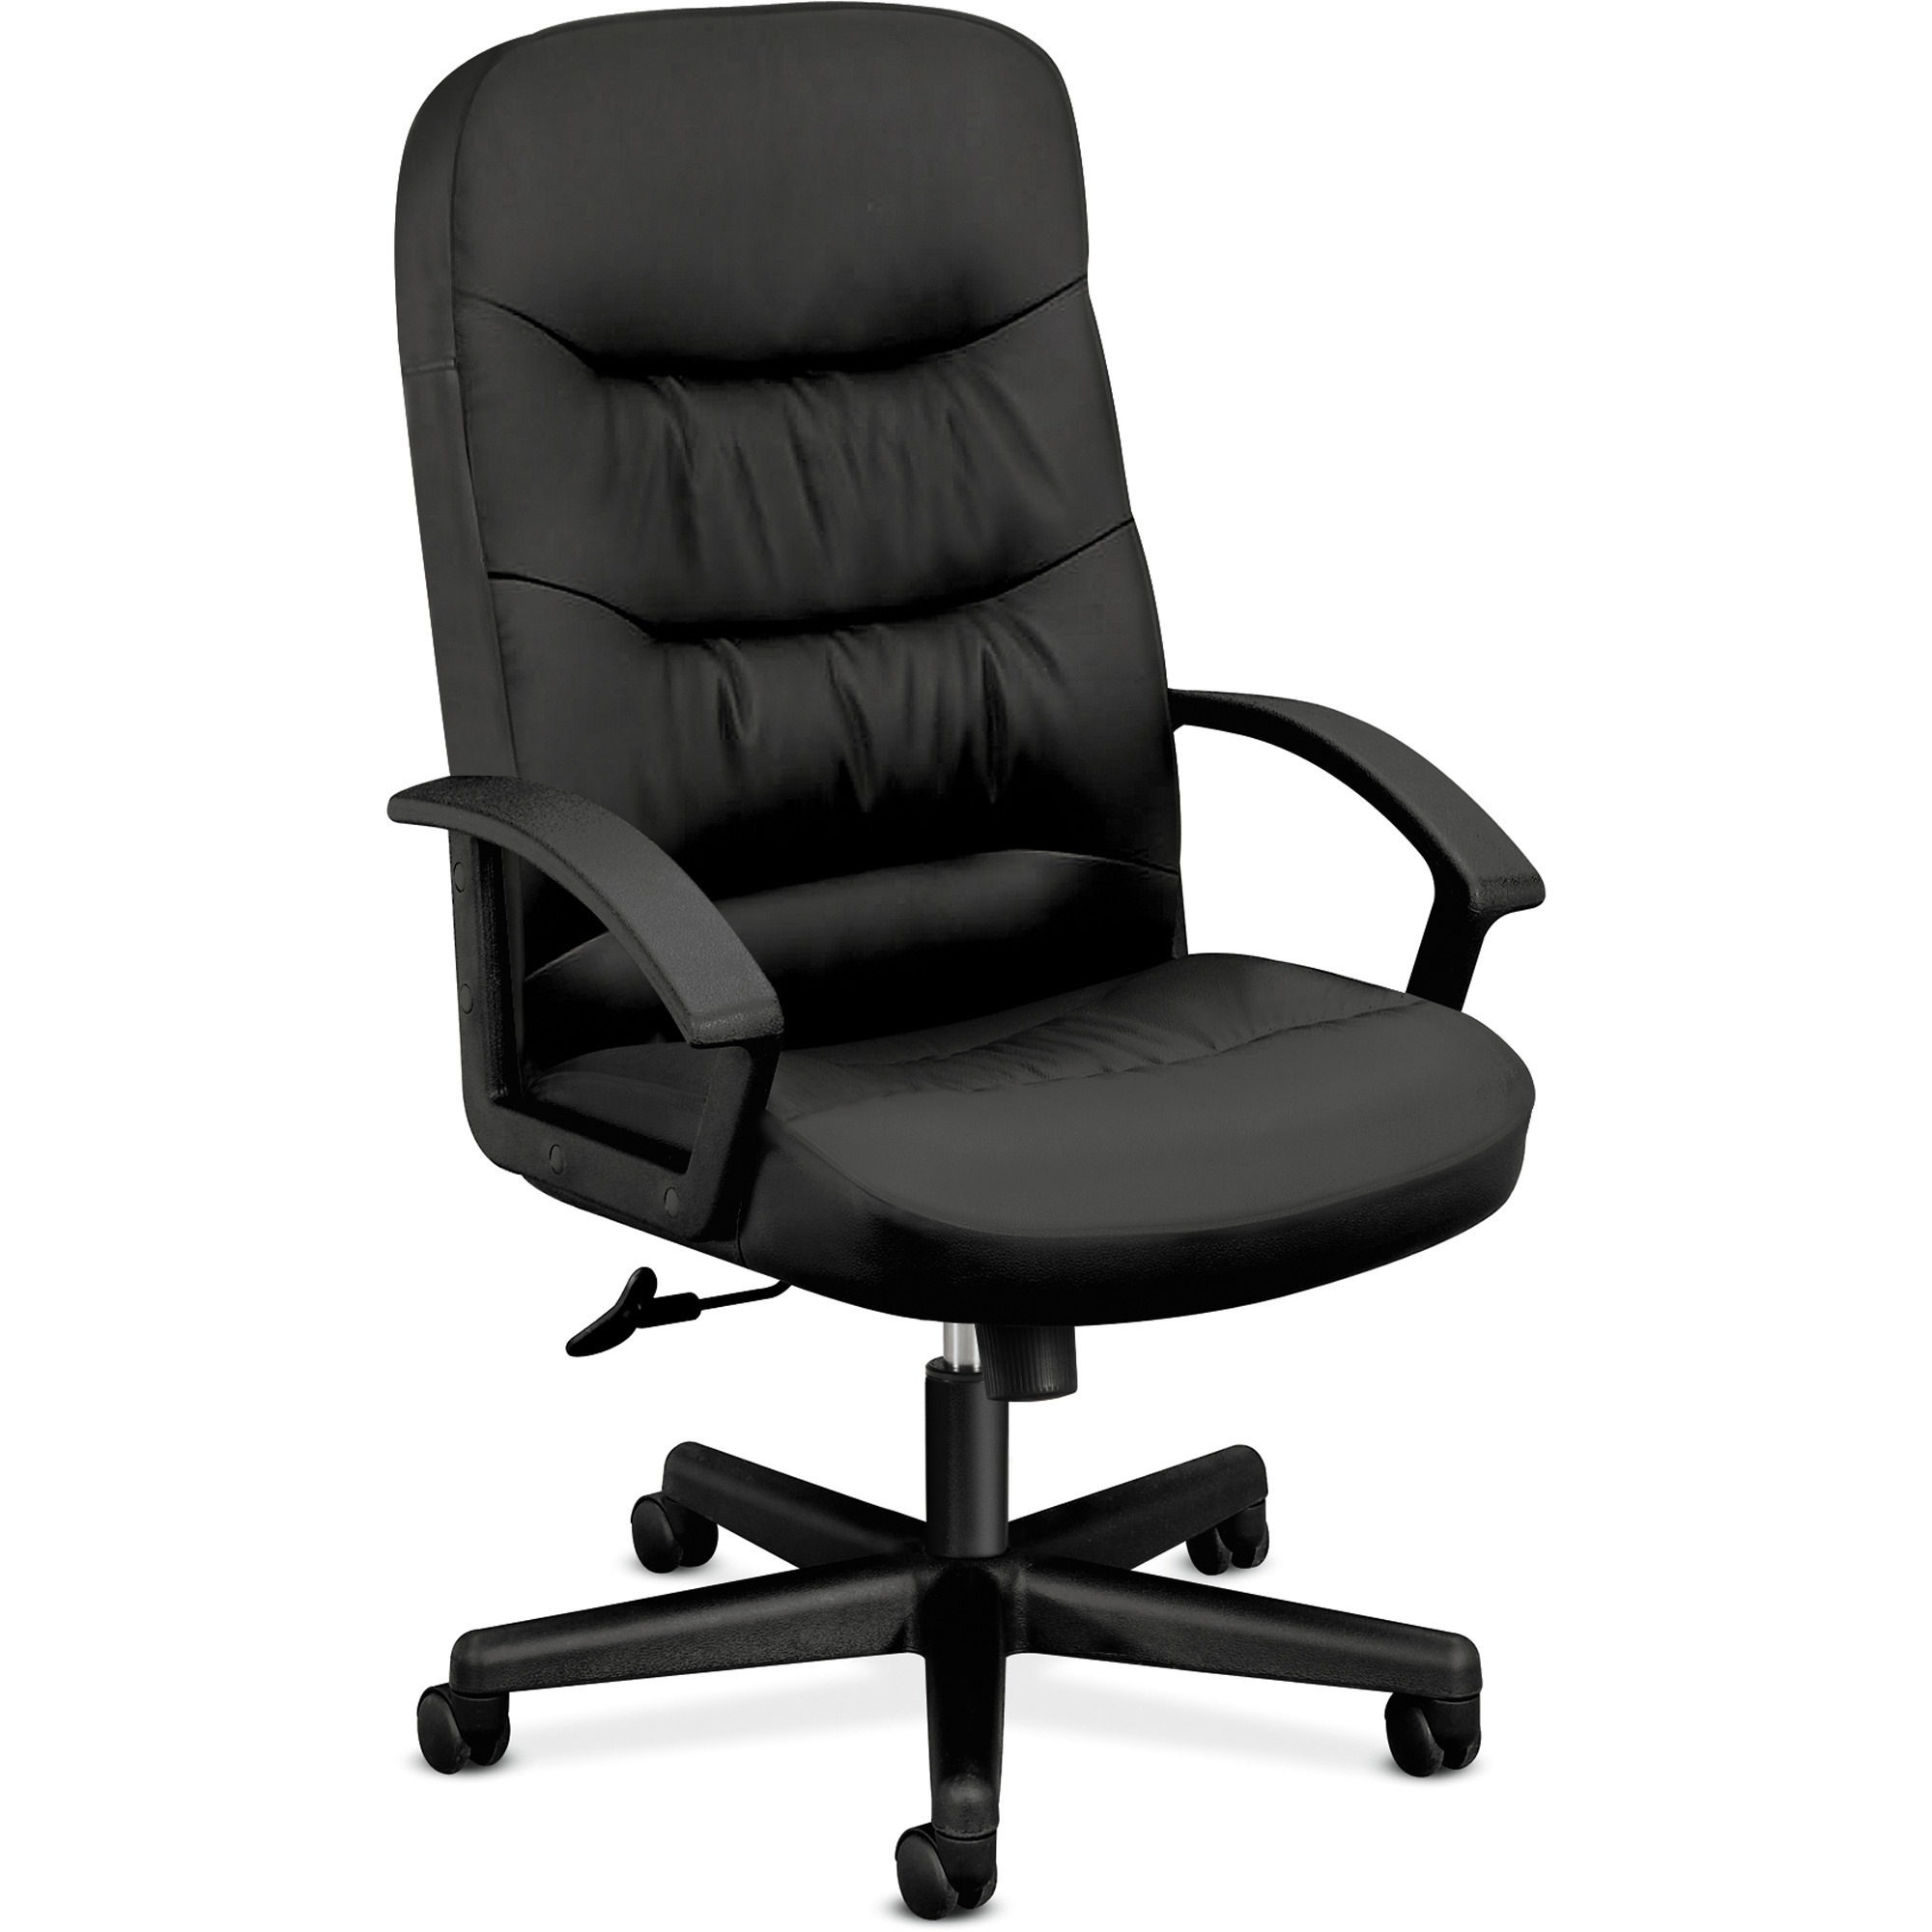 basyx by hon hvl641 executive high back chair bsxvl641sb11